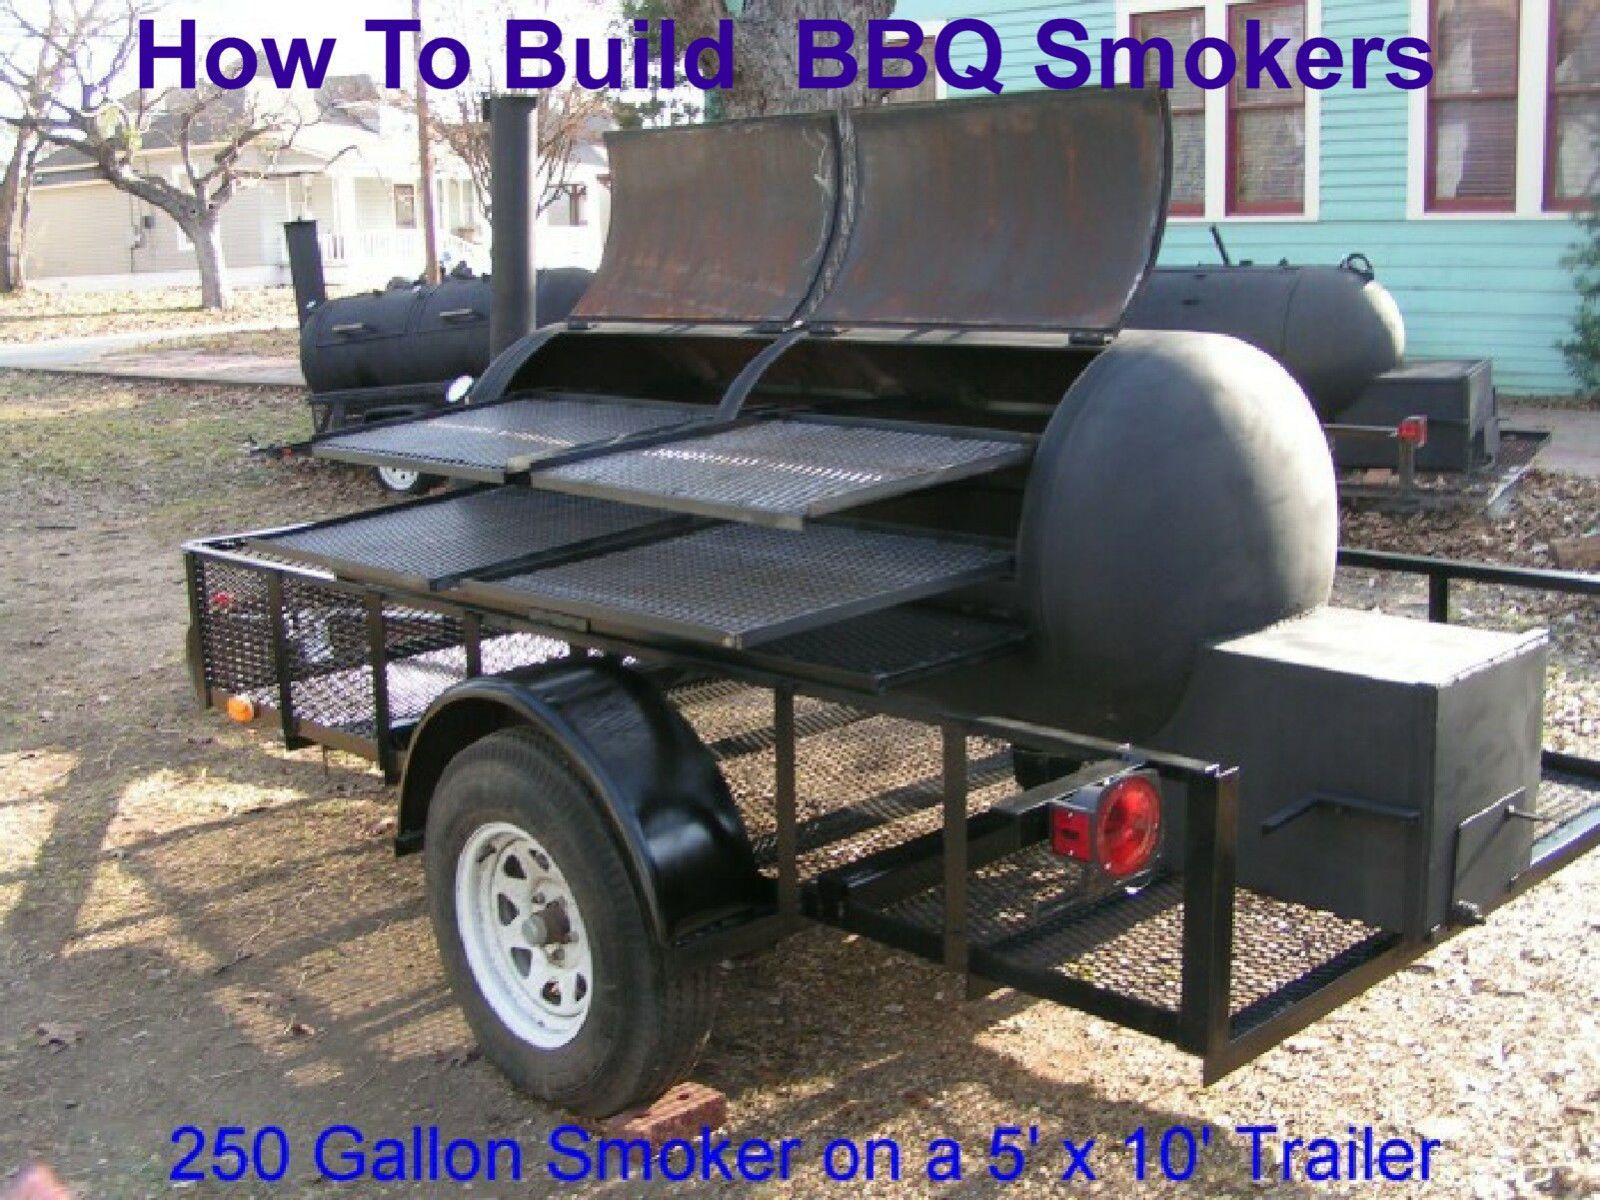 Details about How To Build Any Size BBQ Smoker, Plans CD /w